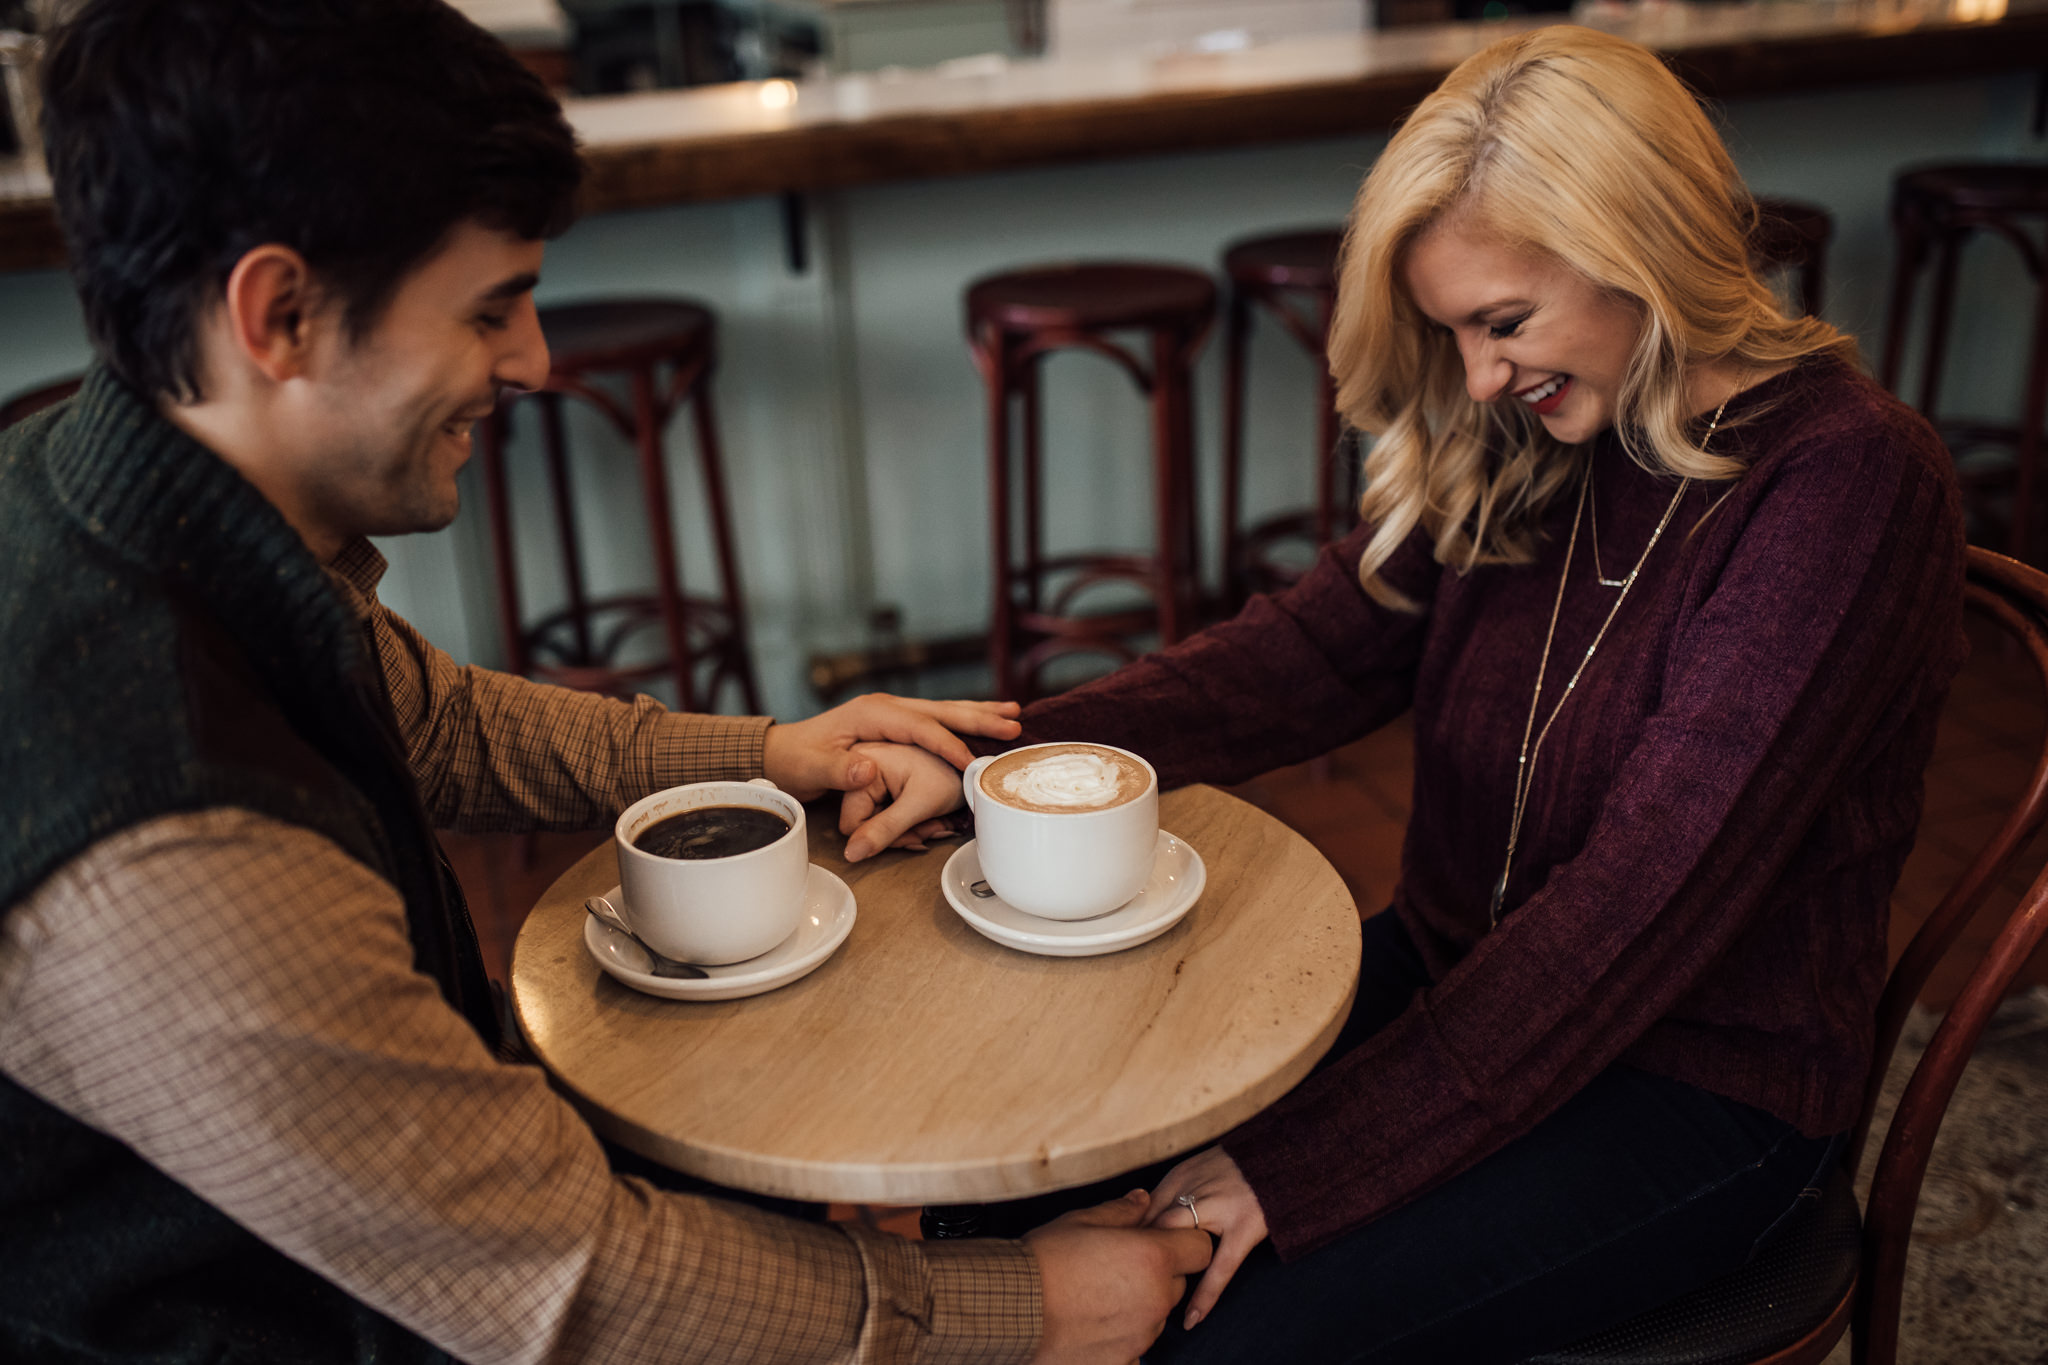 memphis-wedding-photographer-cassie-cook-photography-cafe-keough-engagement-photoshoot-coffee-engagement-6.jpg